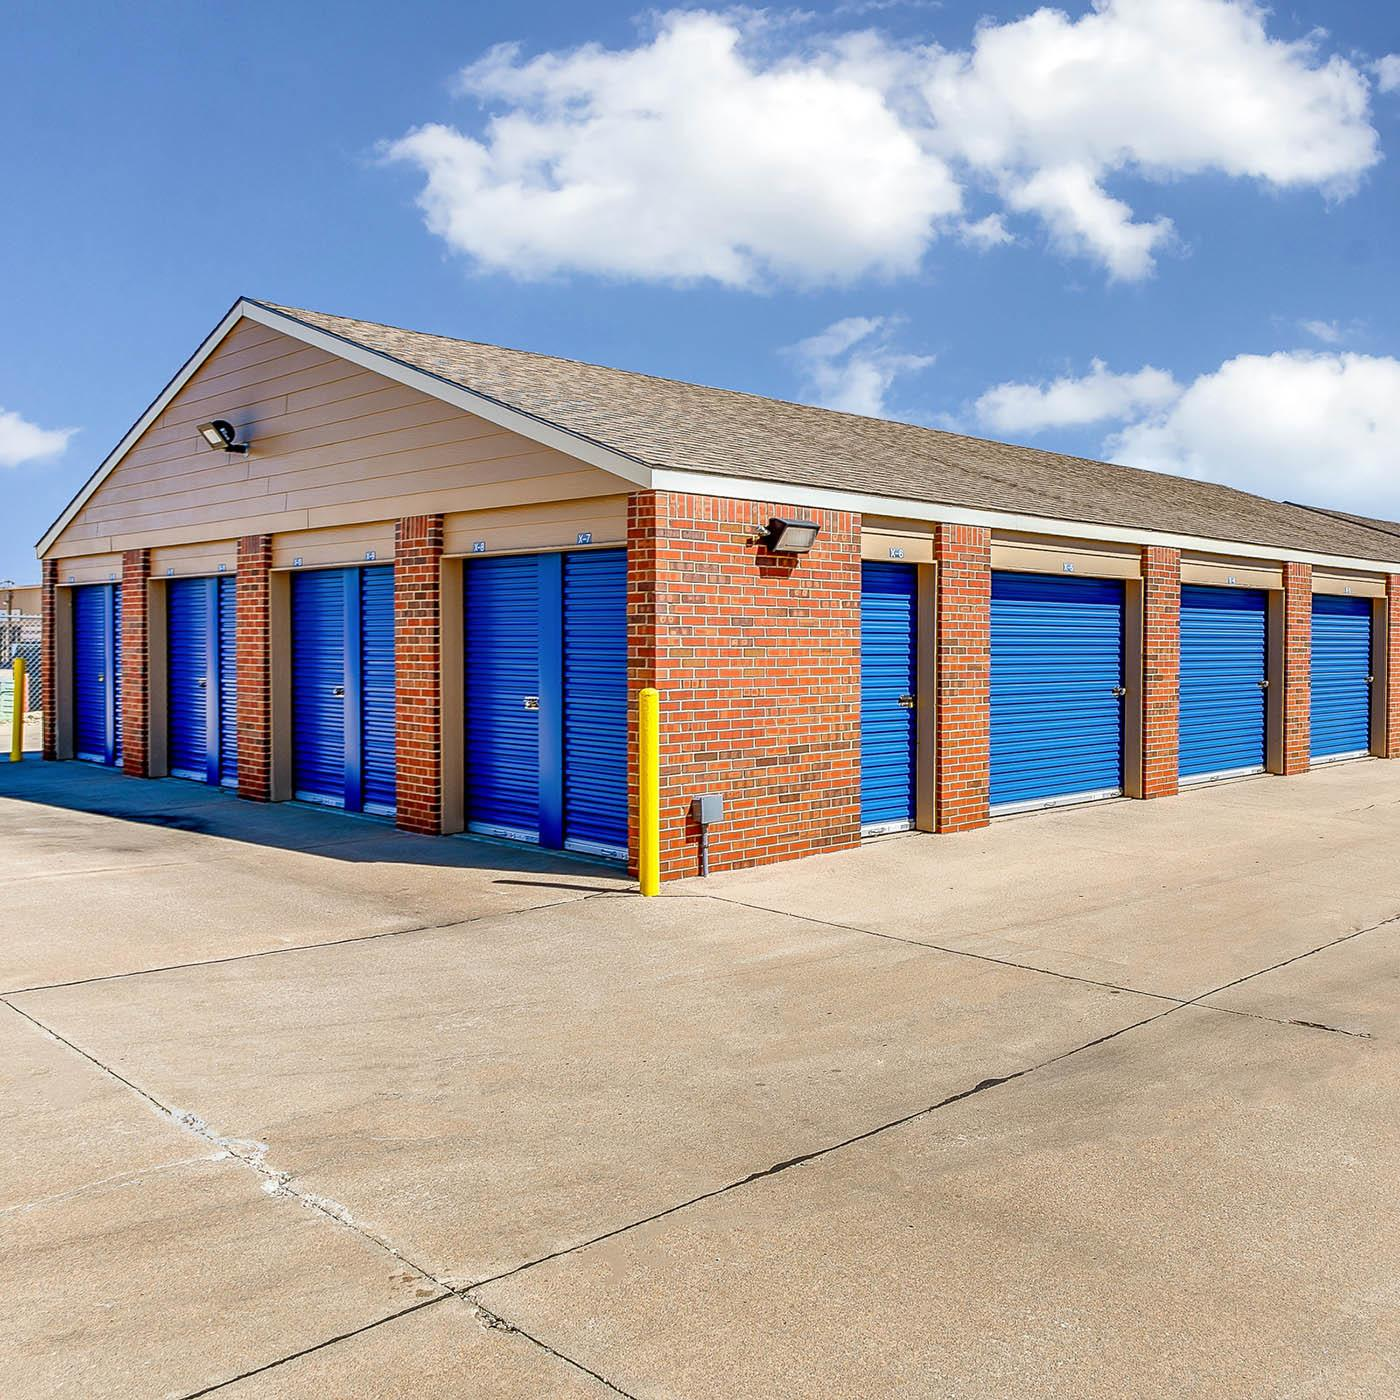 Exterior of Storage Units at Security Self-Storage